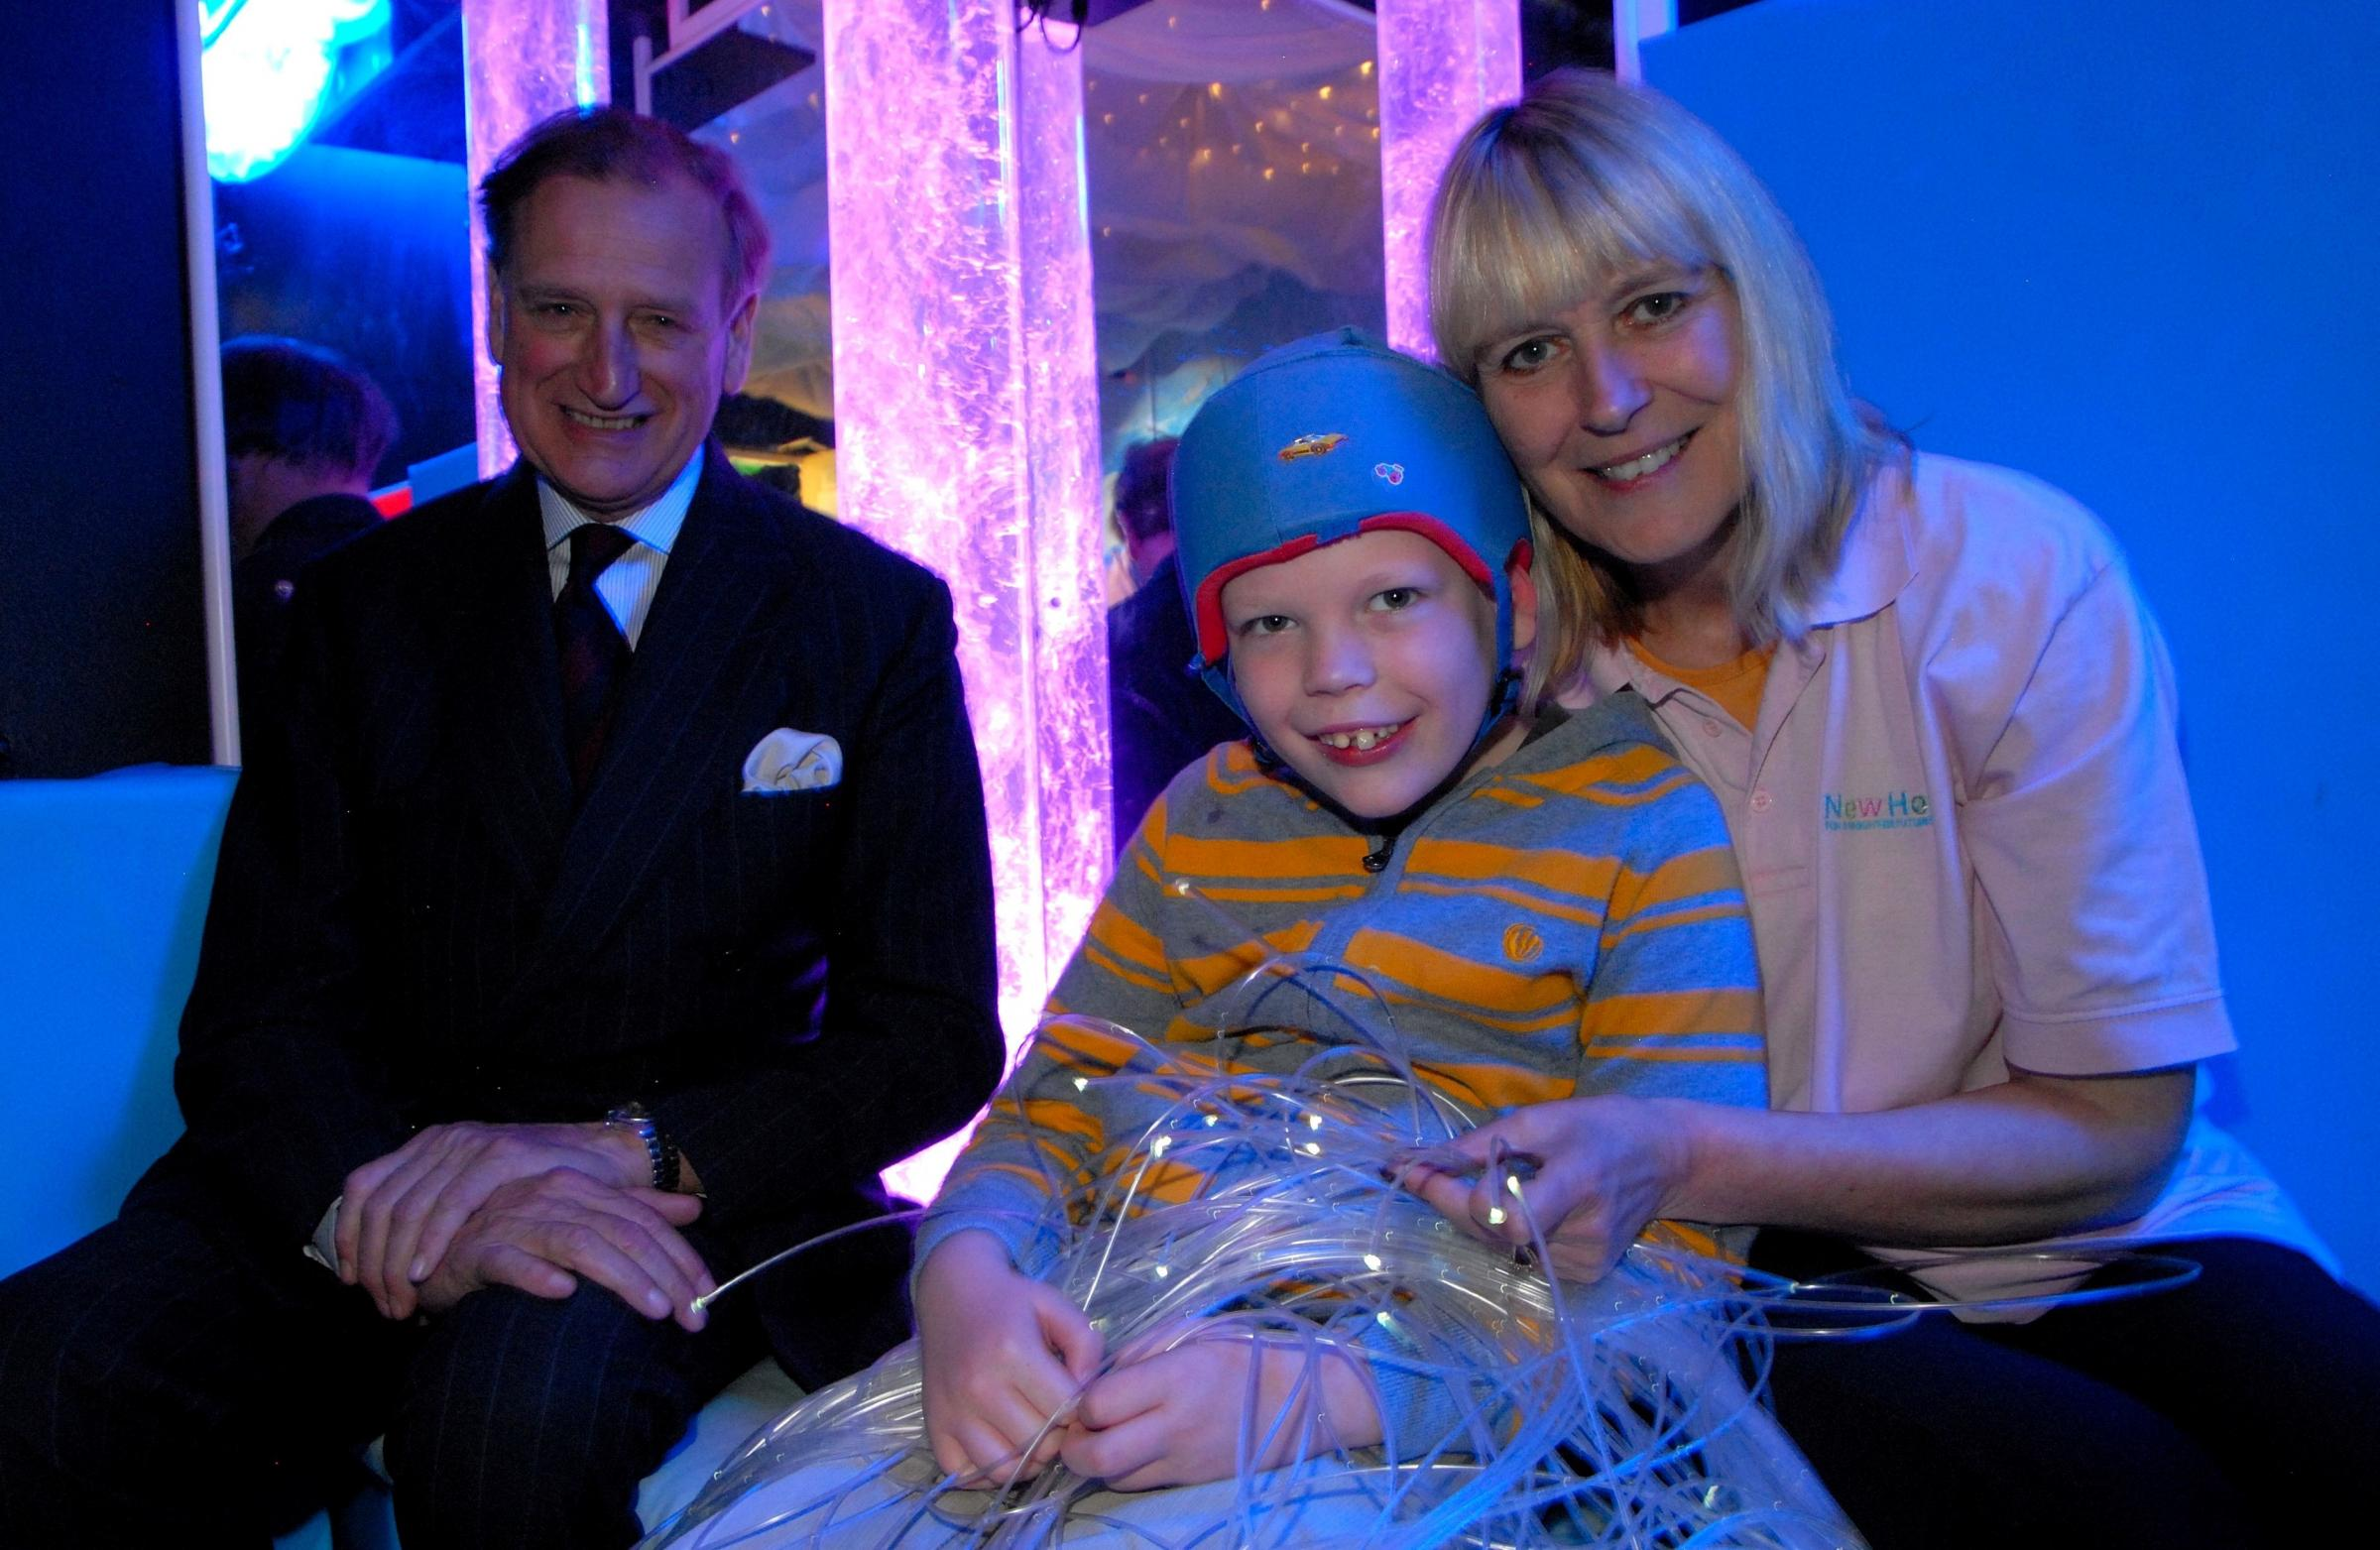 Worcester Lord Lieutenant Patrick Holcroft officially opens the new sensory room at New Hope with Finlay Morton, ten, and Jean Wilson, founder. Picture by Paul Jackson 1614573701